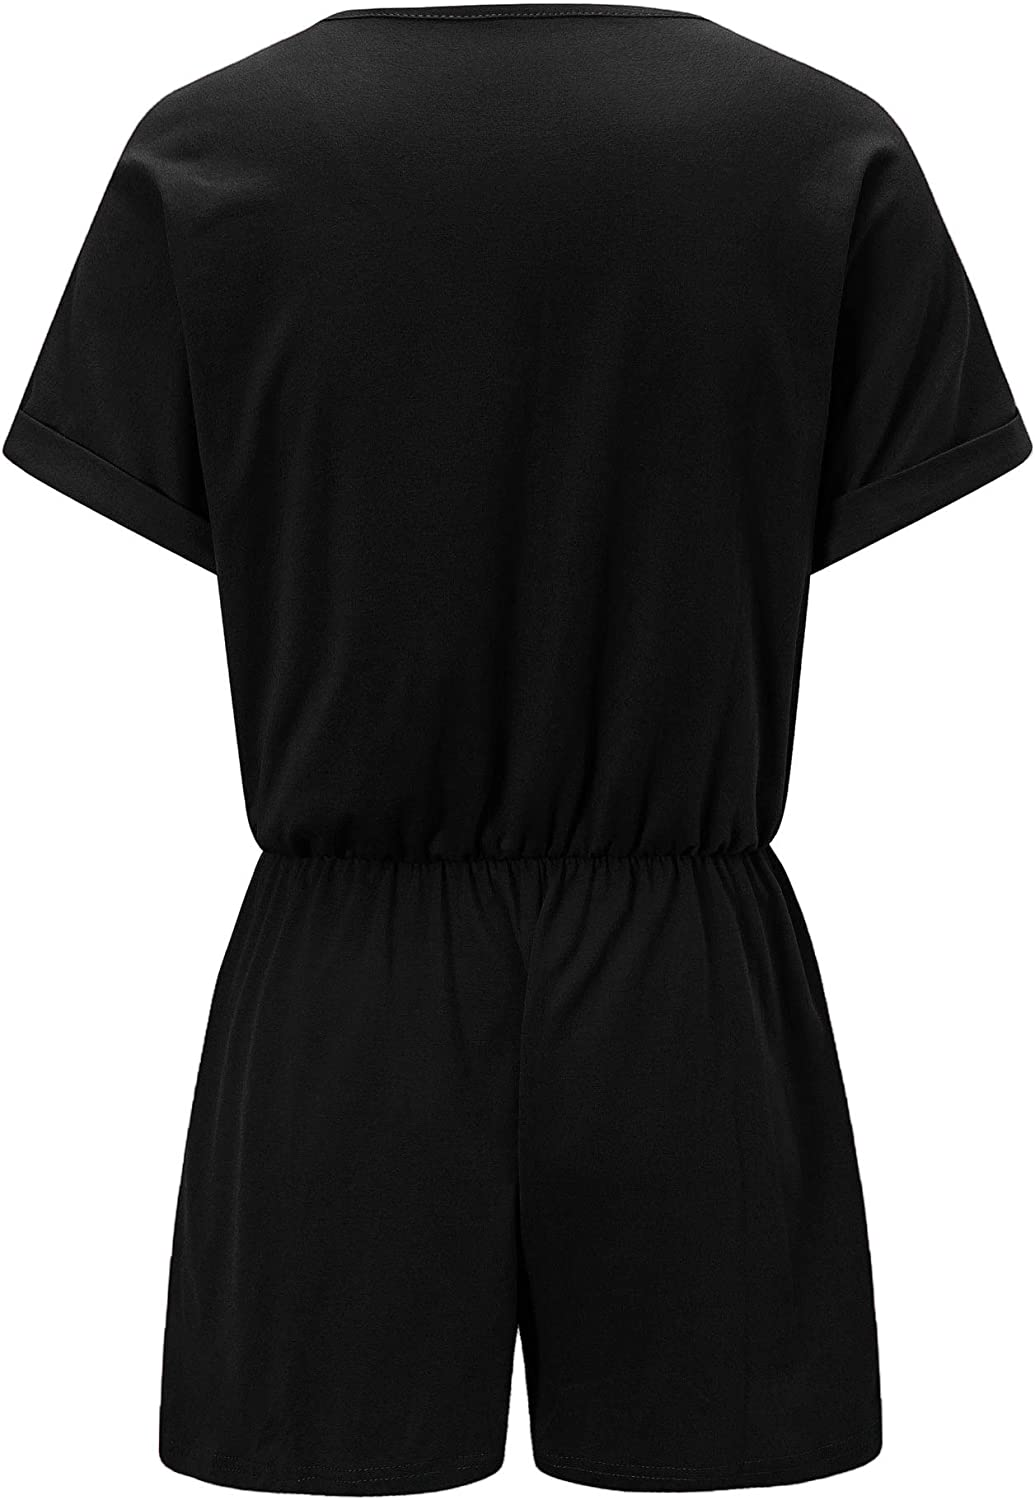 QUNNDY Womens Summer Solid Jumpsuit Casual Loose Short Sleeve Elastic Waist Jumpsuit Rompers with Pockets